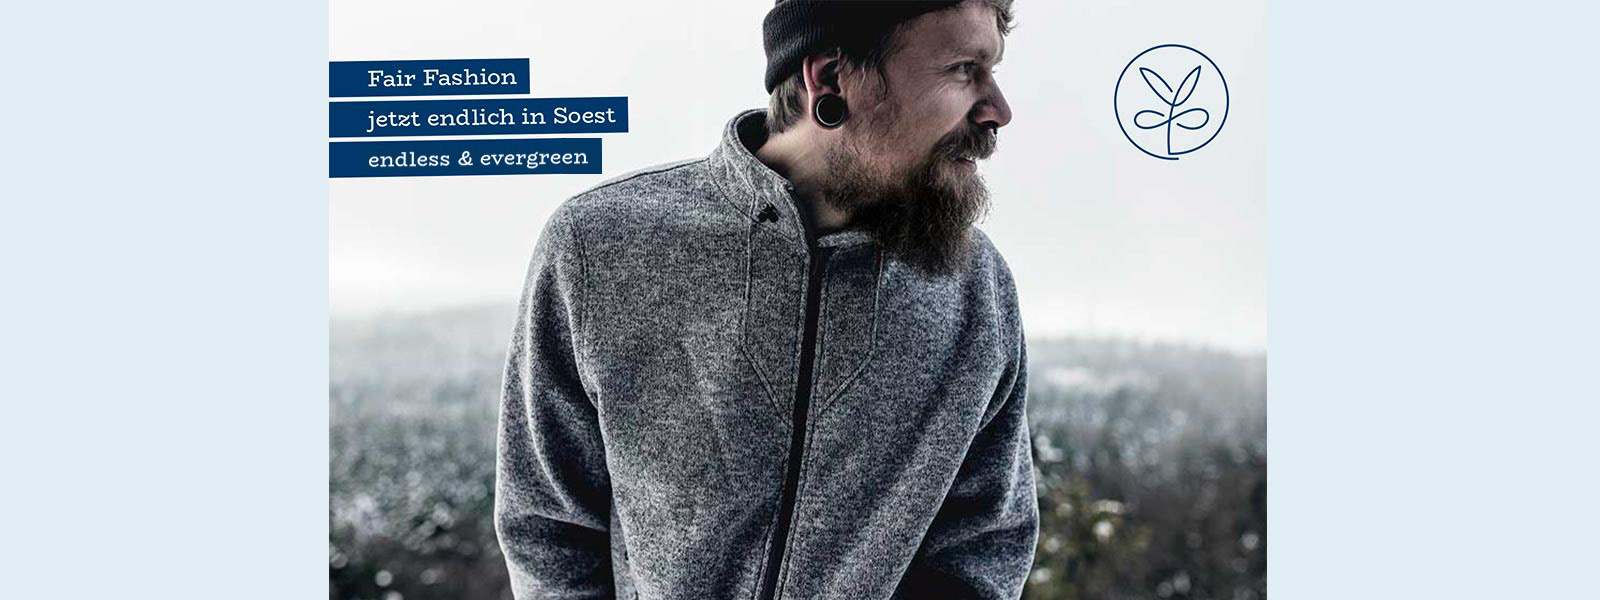 Fleecejacke von Bleed - endless & evergreen